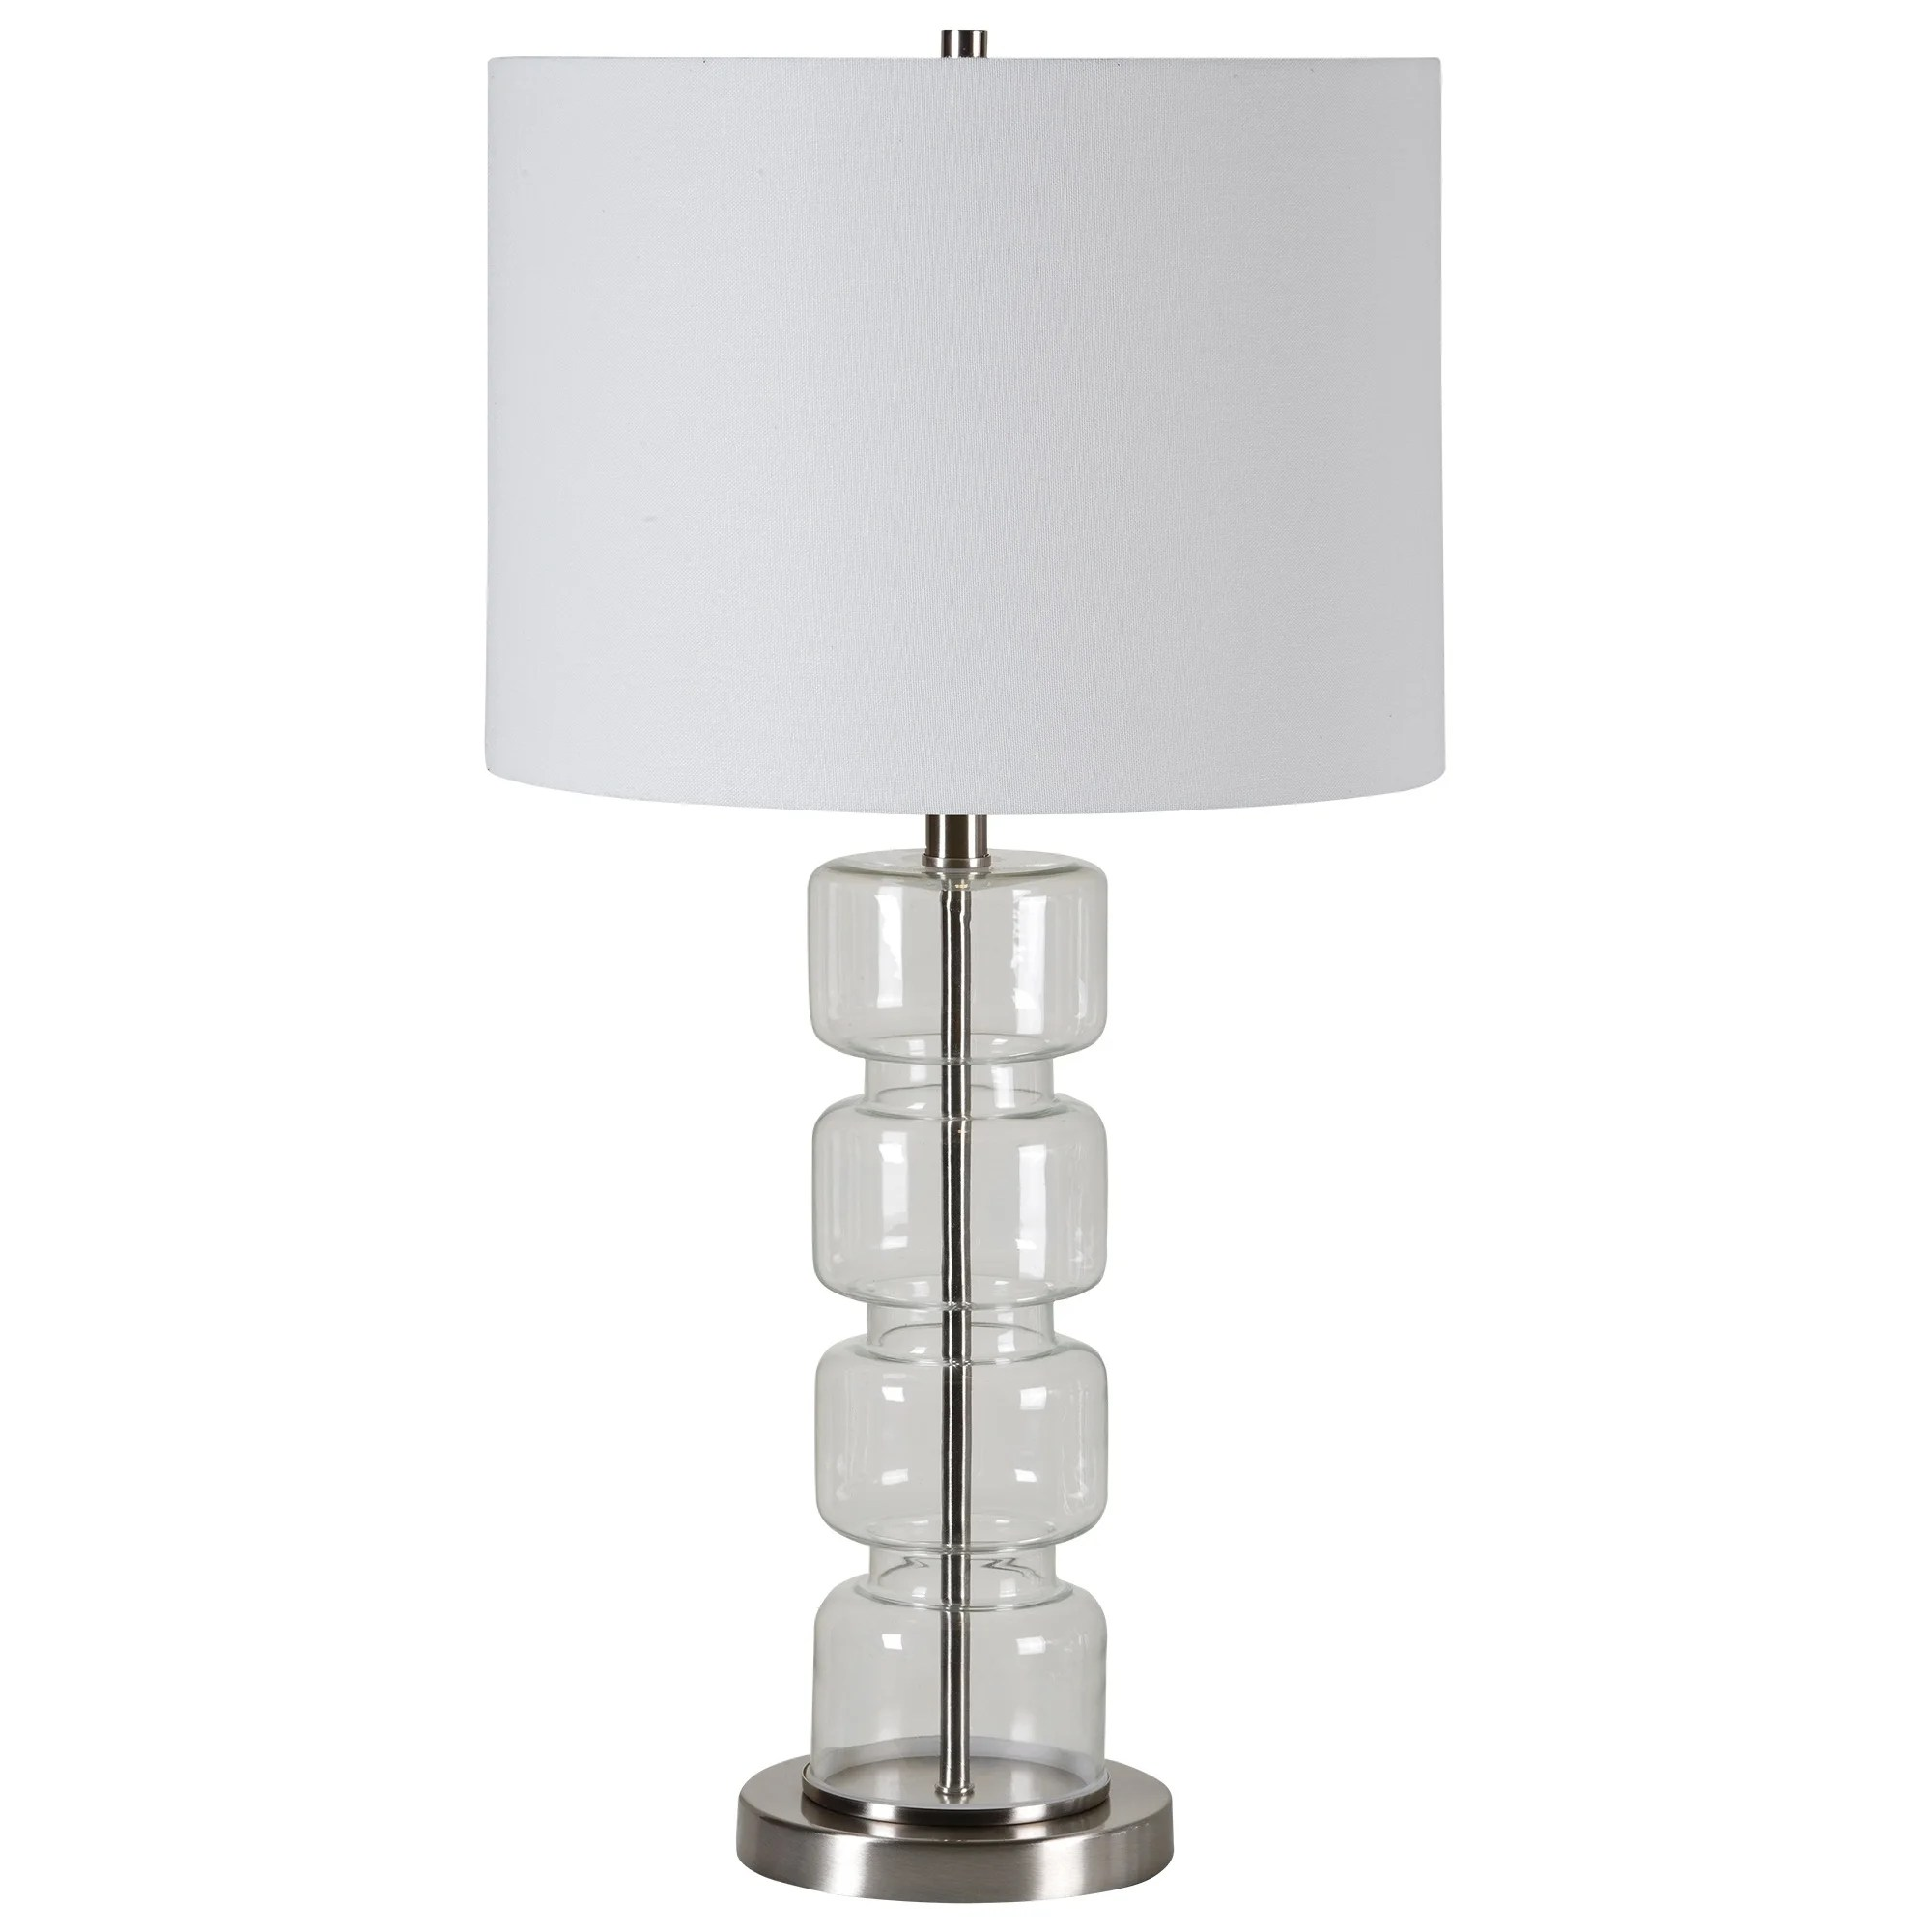 Renwil Antoinette Polished Chrome Table Lamp